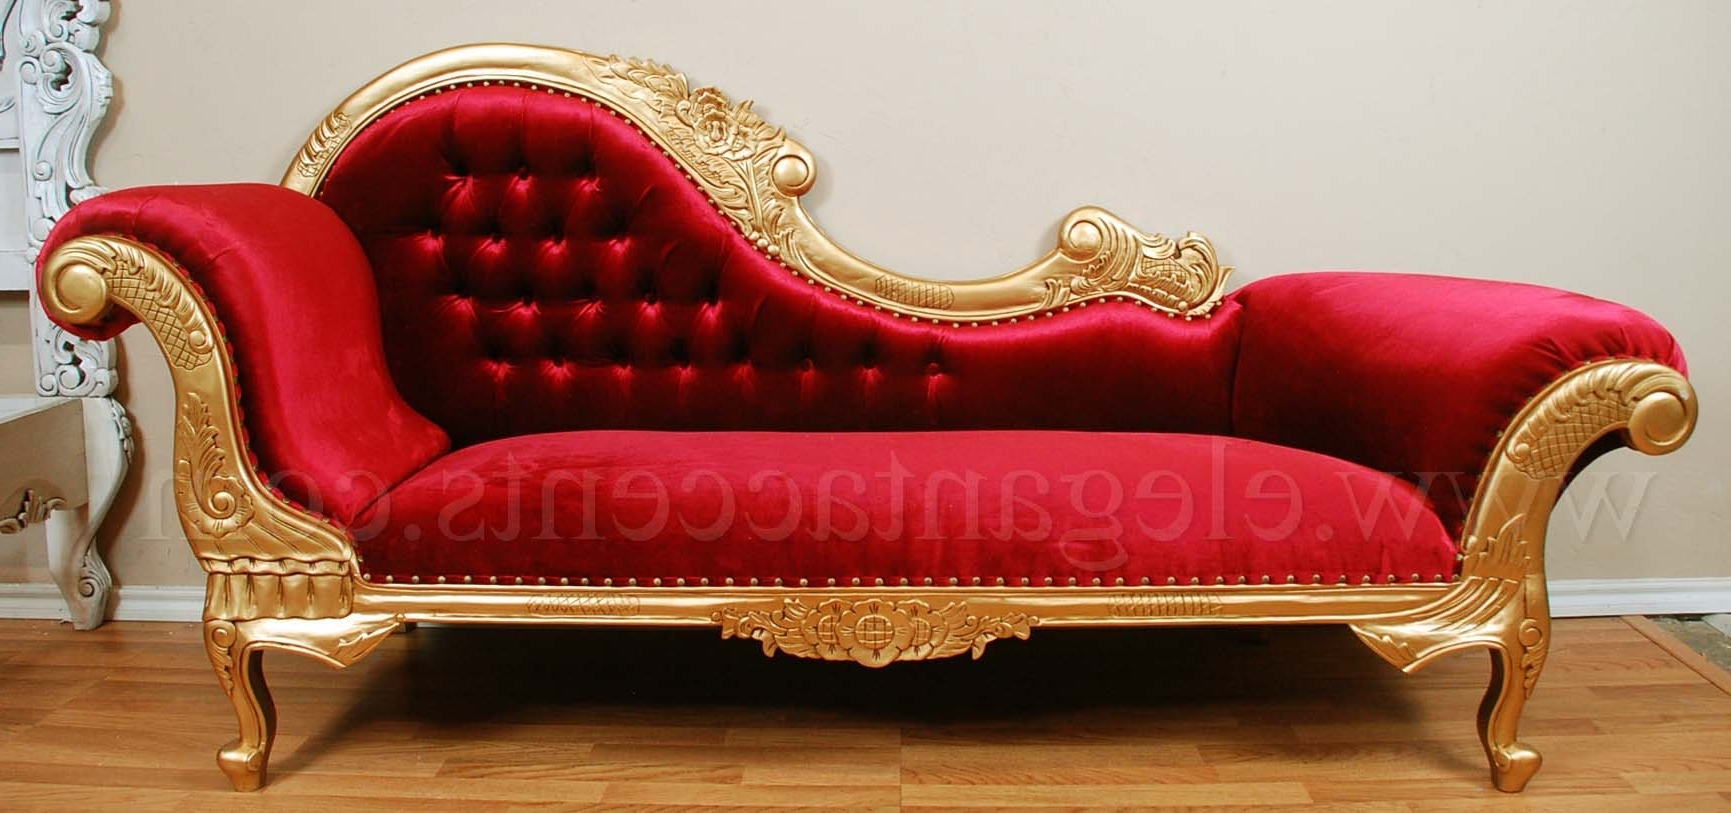 2017 Inspiring Red Victorian Chaise Lounge Pics Decoration Ideas With Victorian Chaise Lounge Chairs (View 10 of 15)